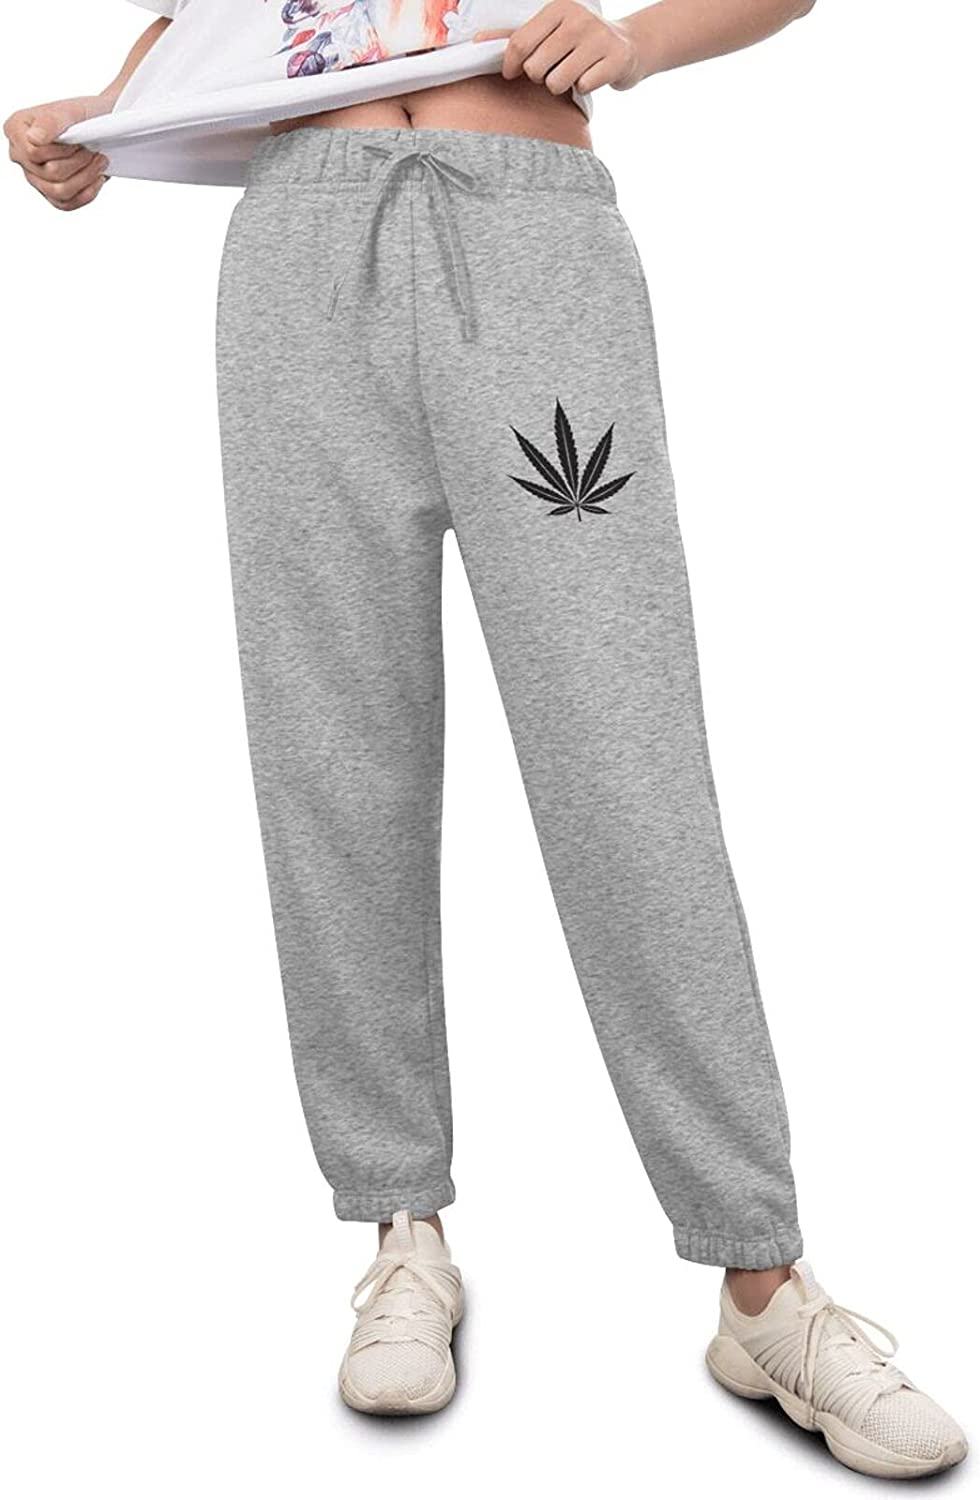 Marijuana Max 71% OFF Leaf Weed Smokers Womens' Now free shipping Track Jogger Pants Sweatpant